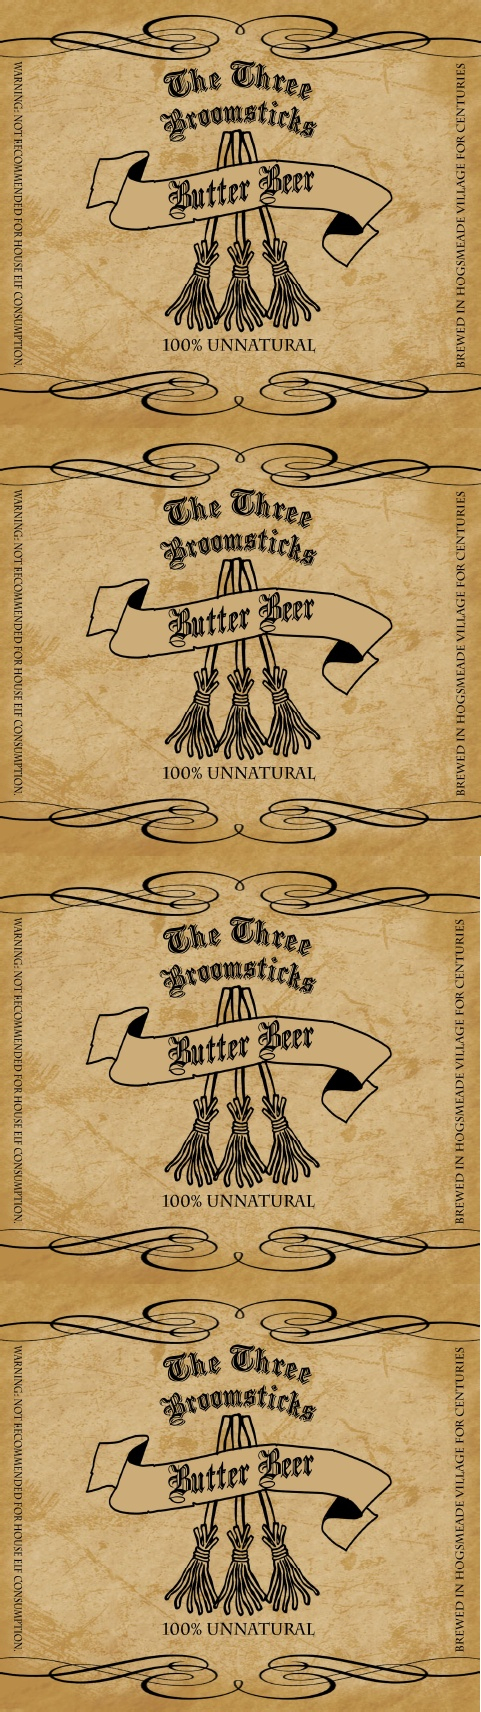 Hog Warts Express Butter Beer Label | Harry Potter - Free Printable Butterbeer Labels